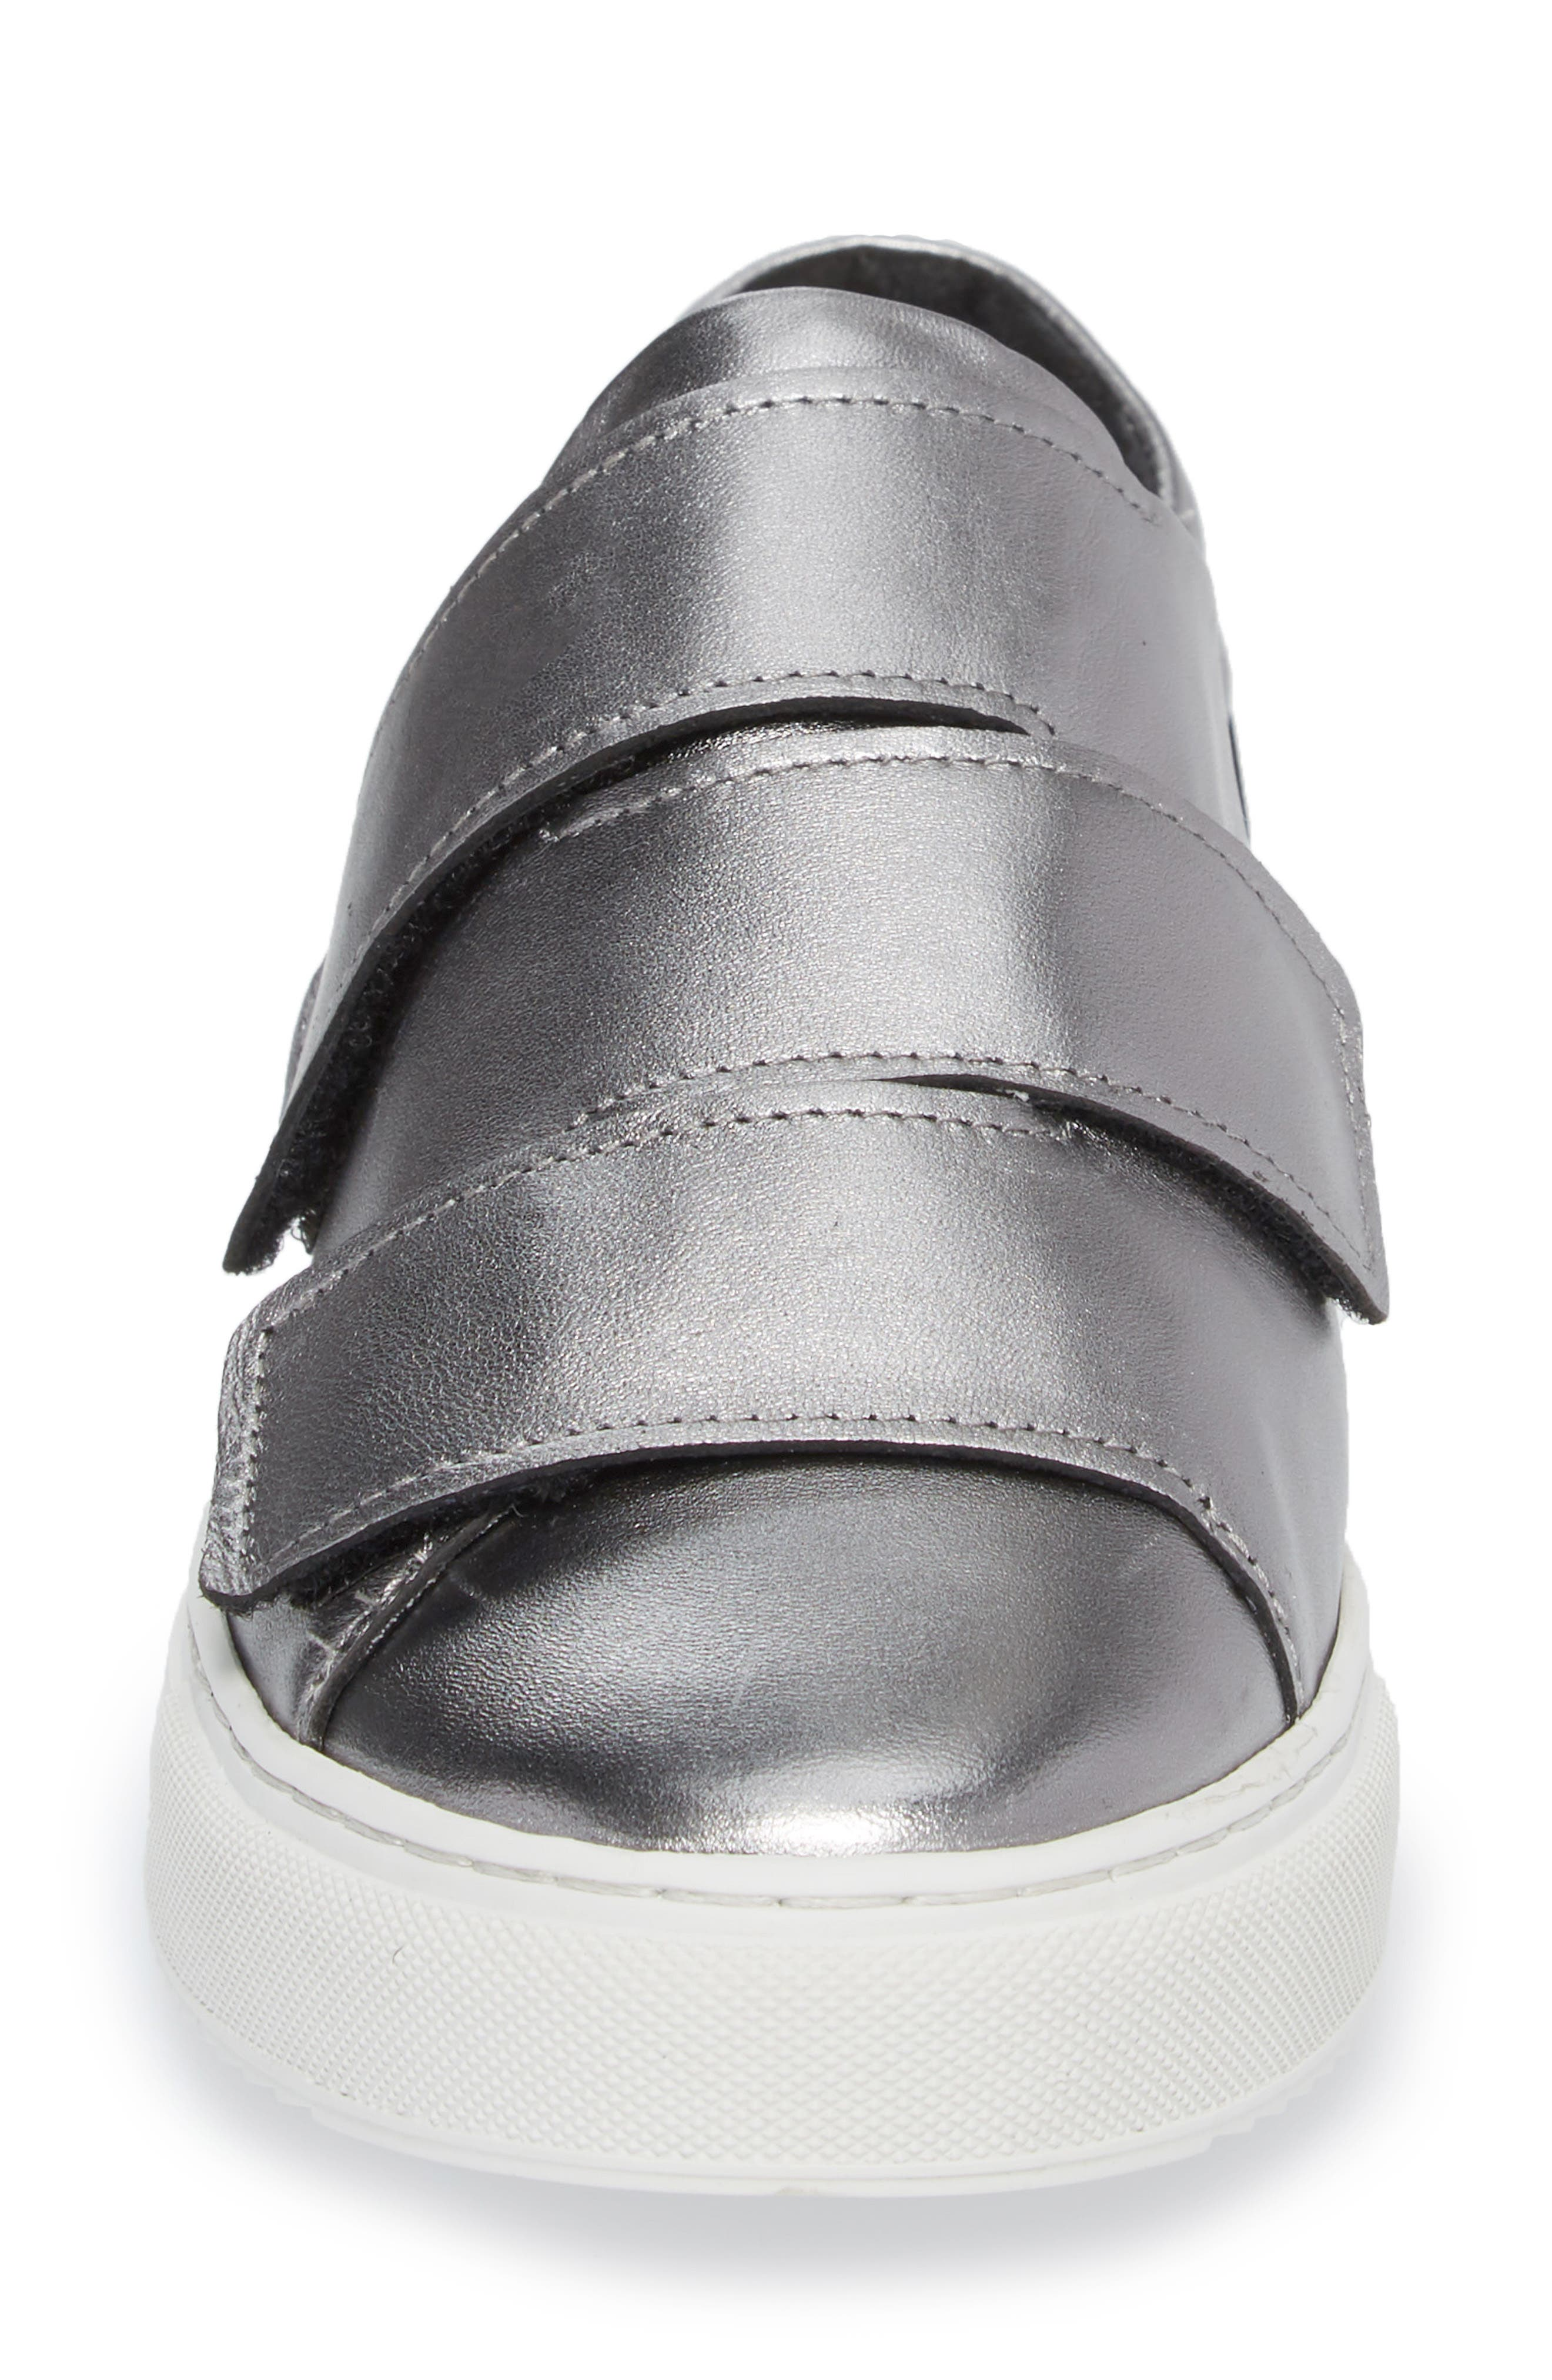 Rollover Alternating Strap Sneaker,                             Alternate thumbnail 4, color,                             Pewter Leather